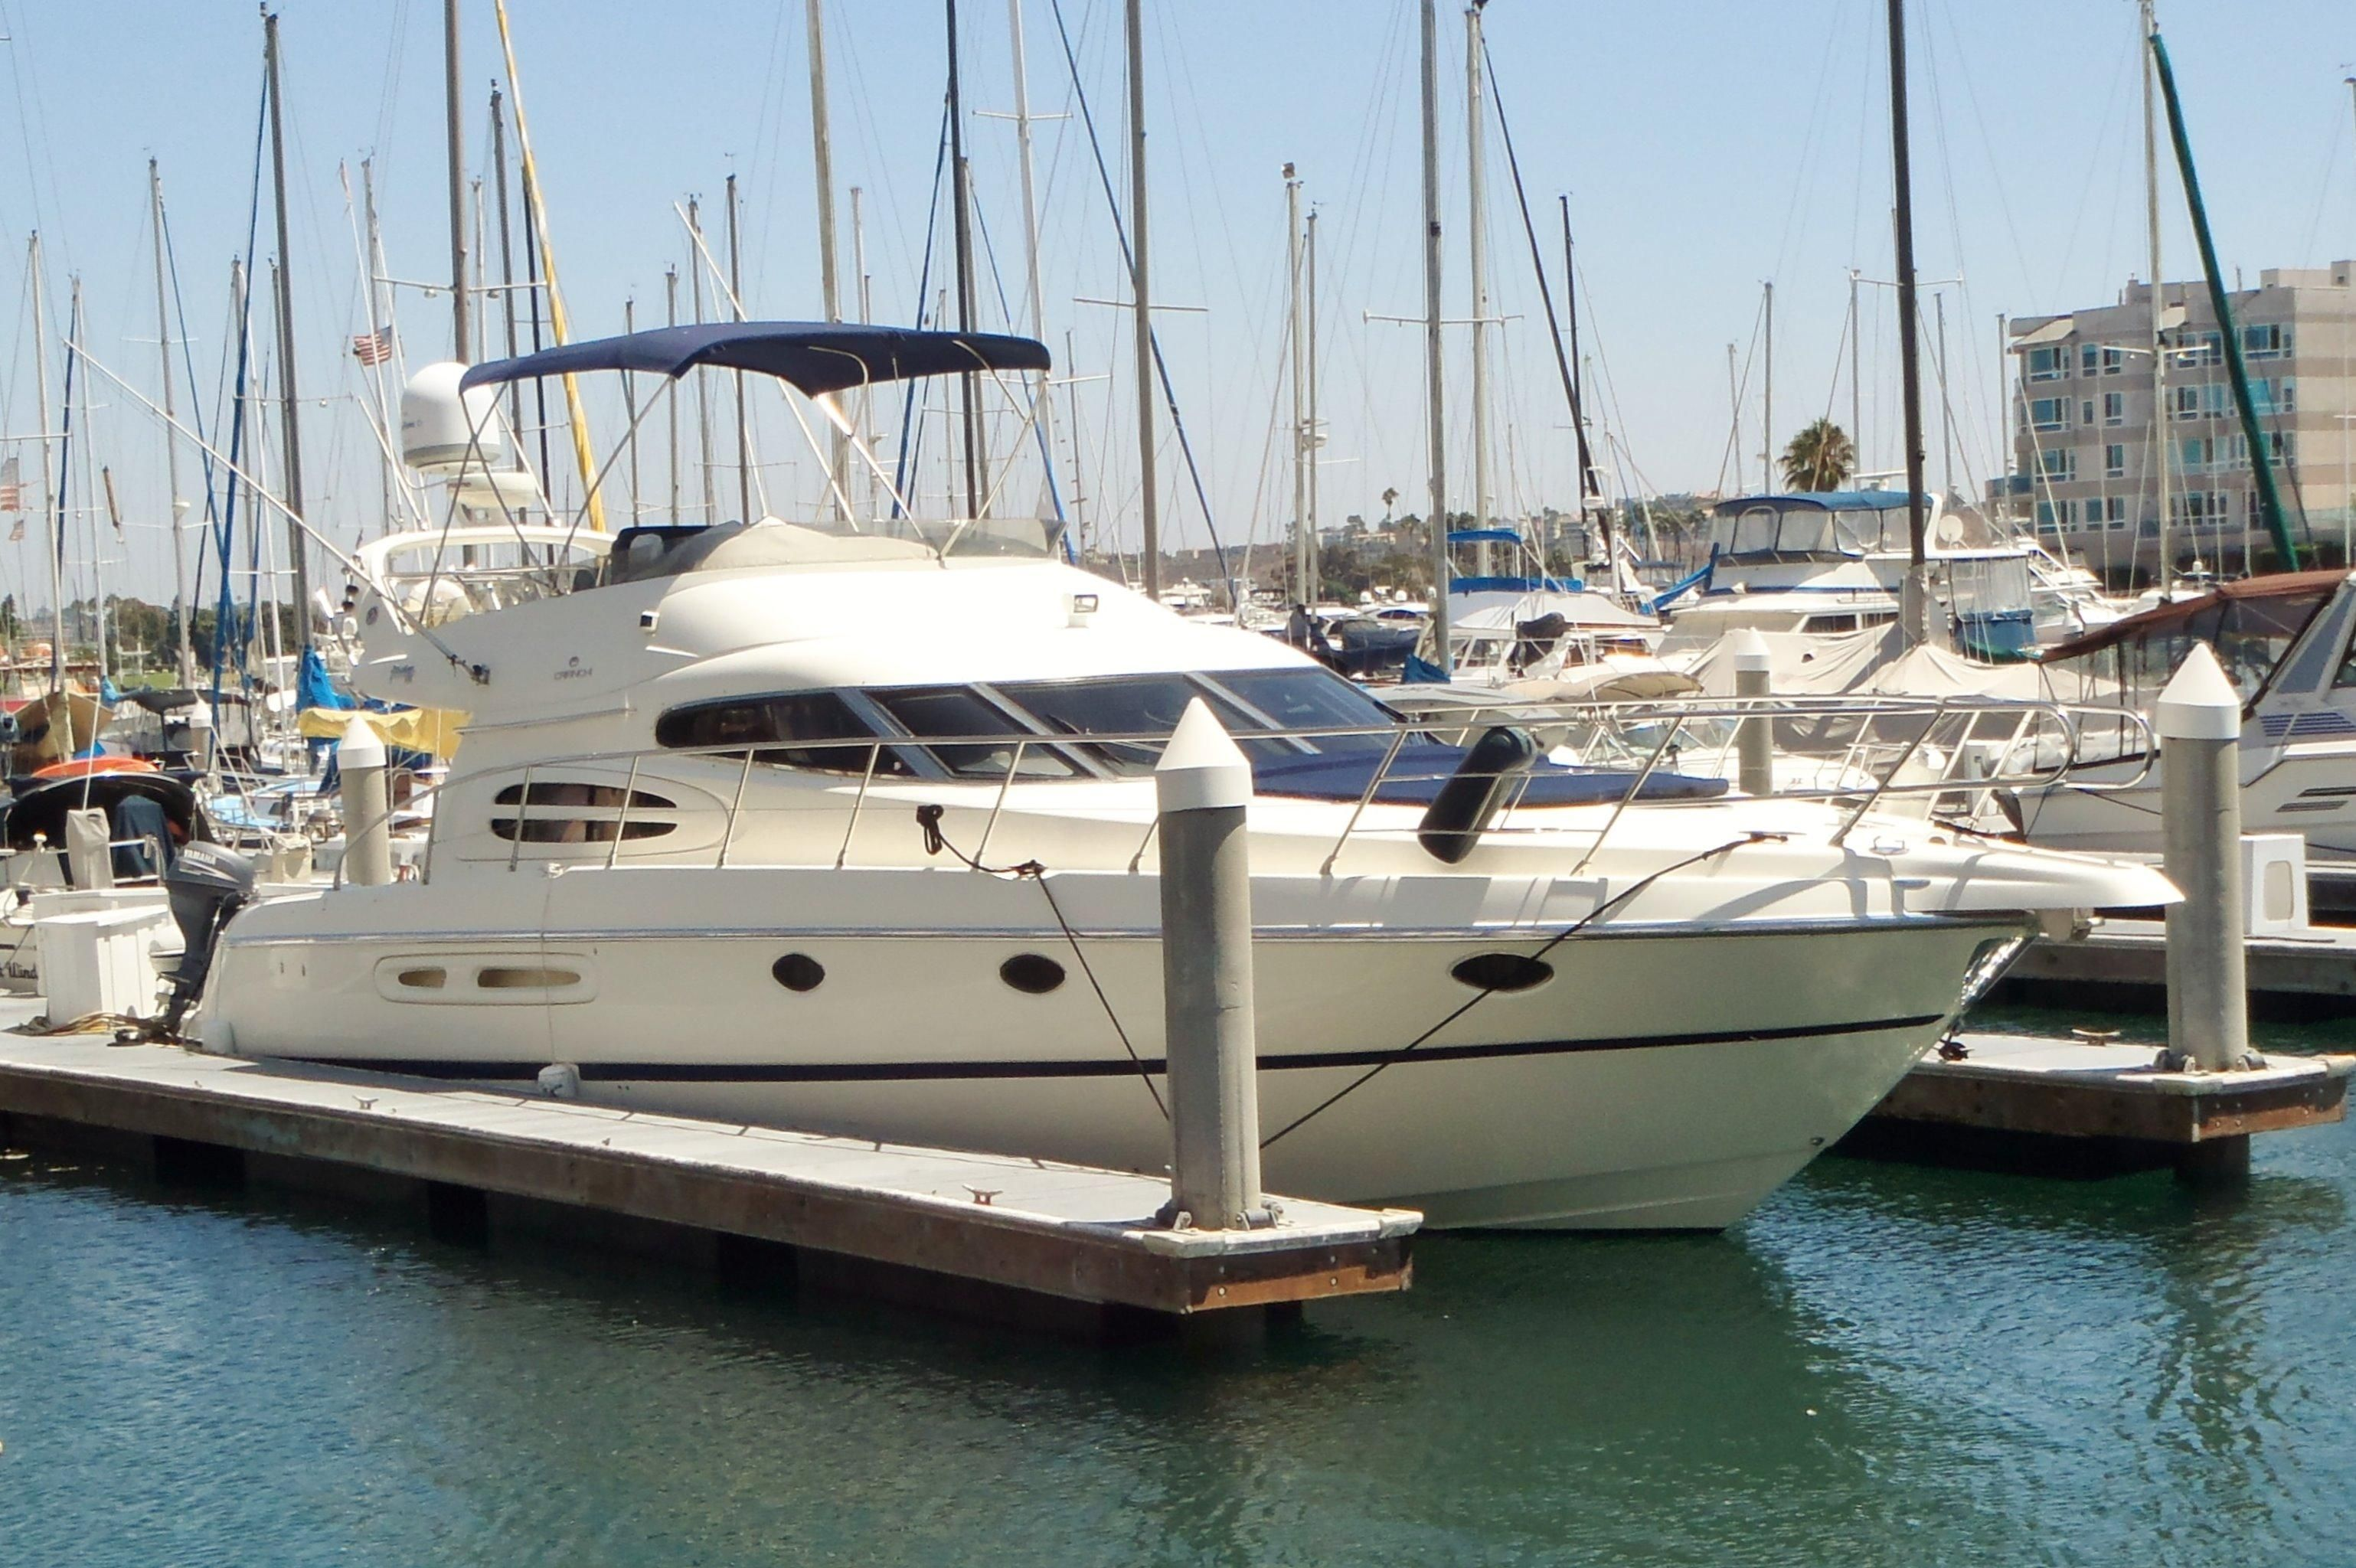 2003 cranchi atlantique 48 power boat for sale www for Marina del rey fishing charter